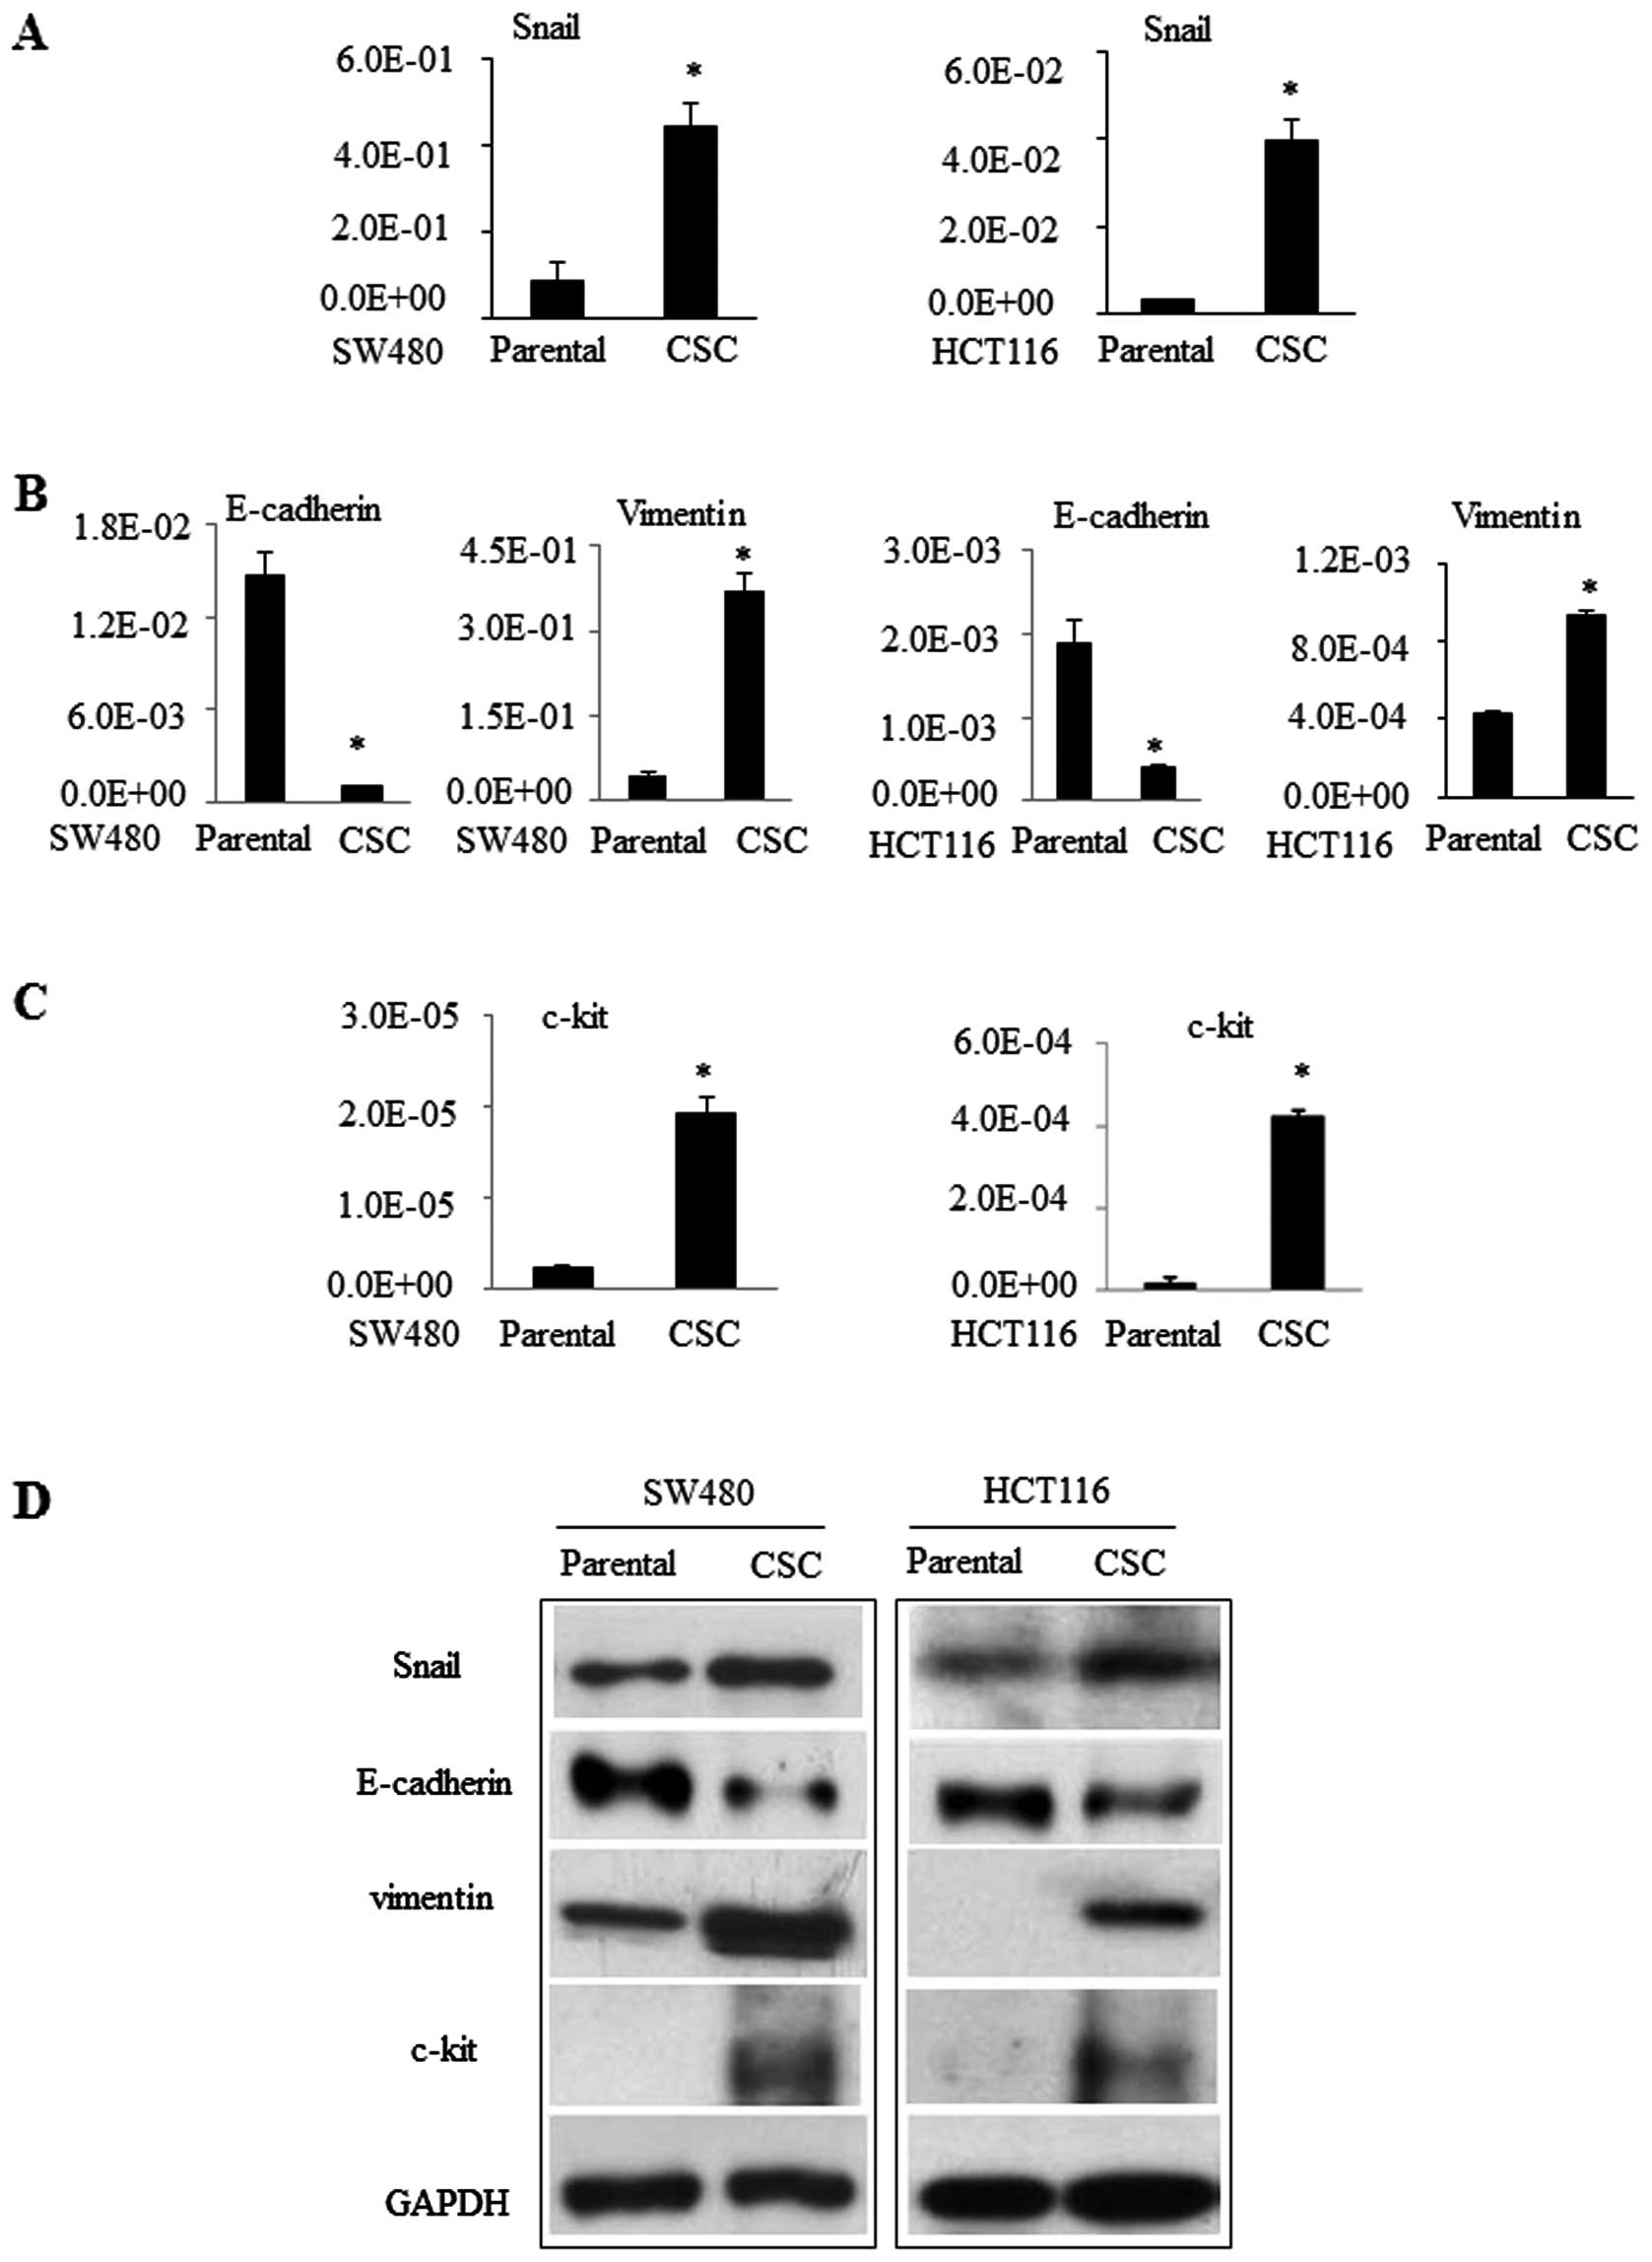 Inhibition Of The Transcription Factor Sp1 Suppresses Colon Cancer Stem Cell Growth And Induces Apoptosis In Vitro And In Nude Mouse Xenografts